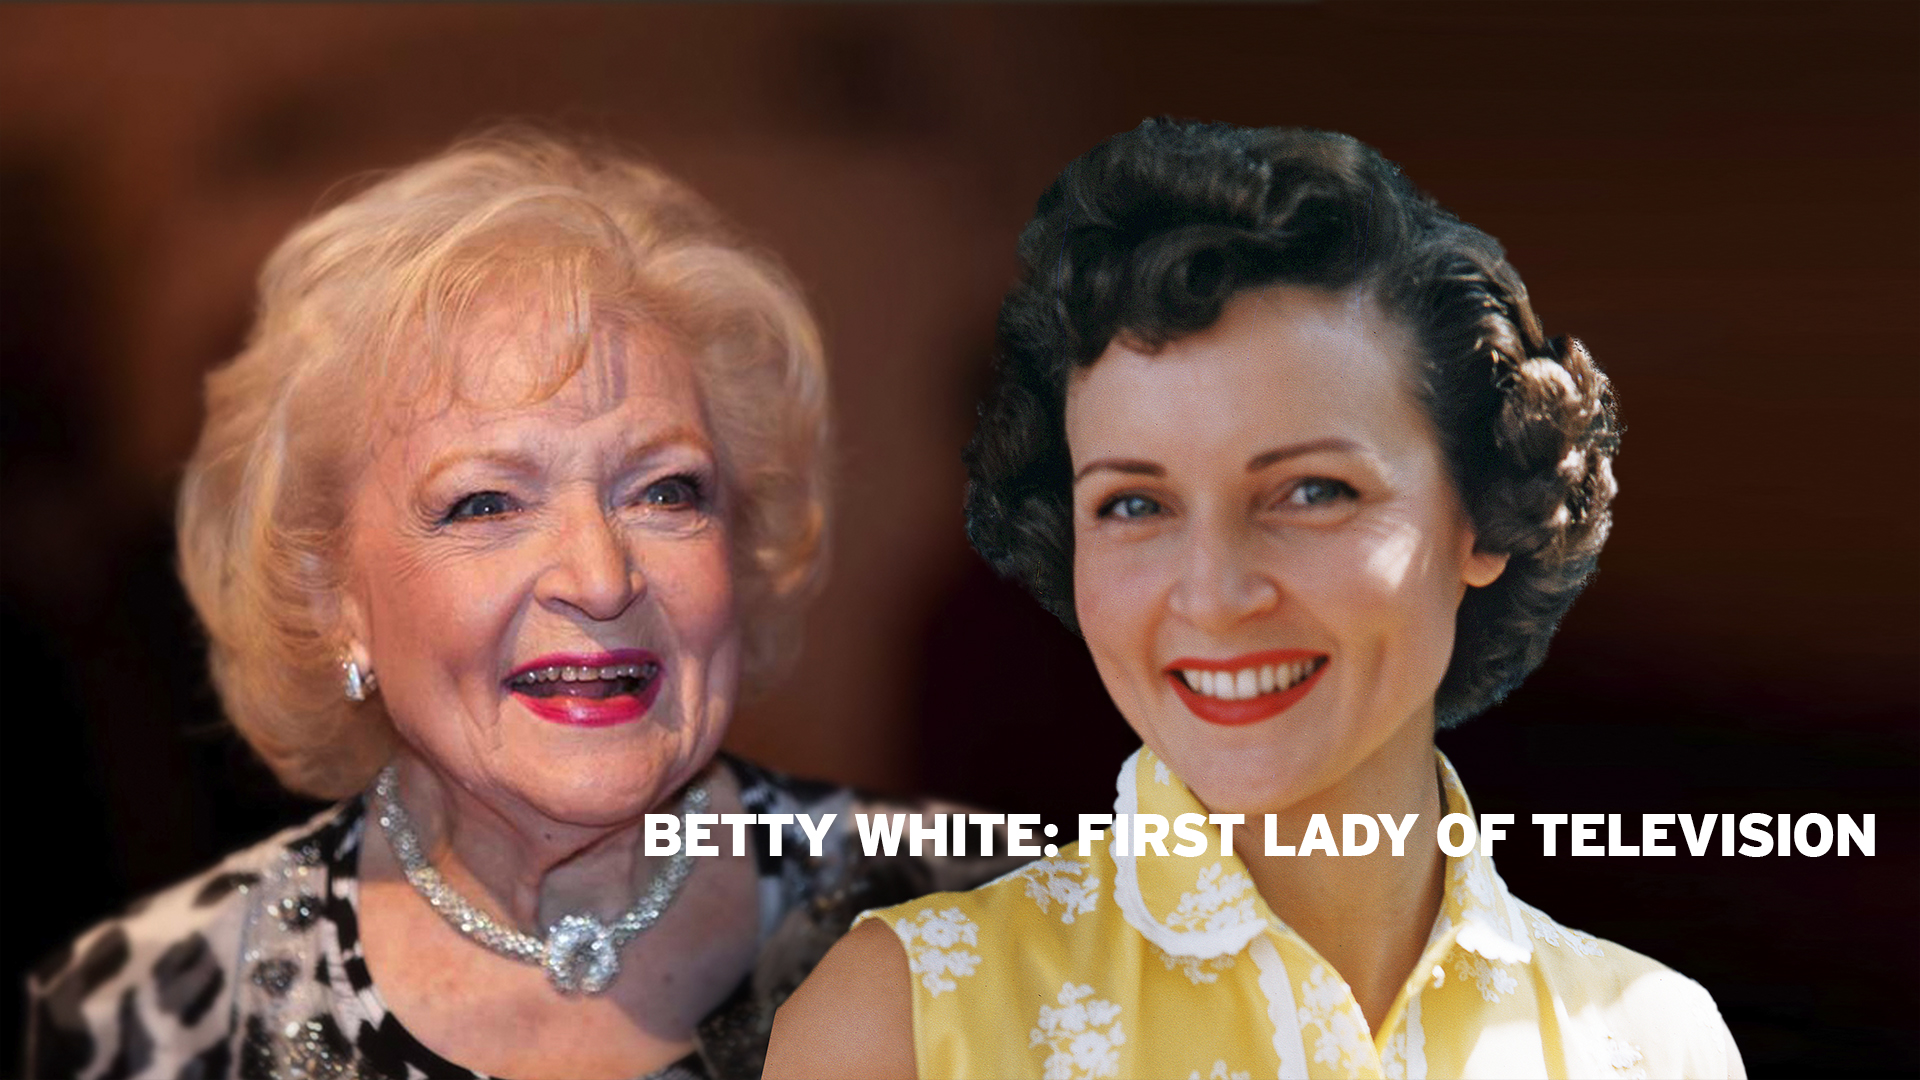 BETTY WHITE - First Lady of Television - Tuesday, August 21 at 8 p.m.